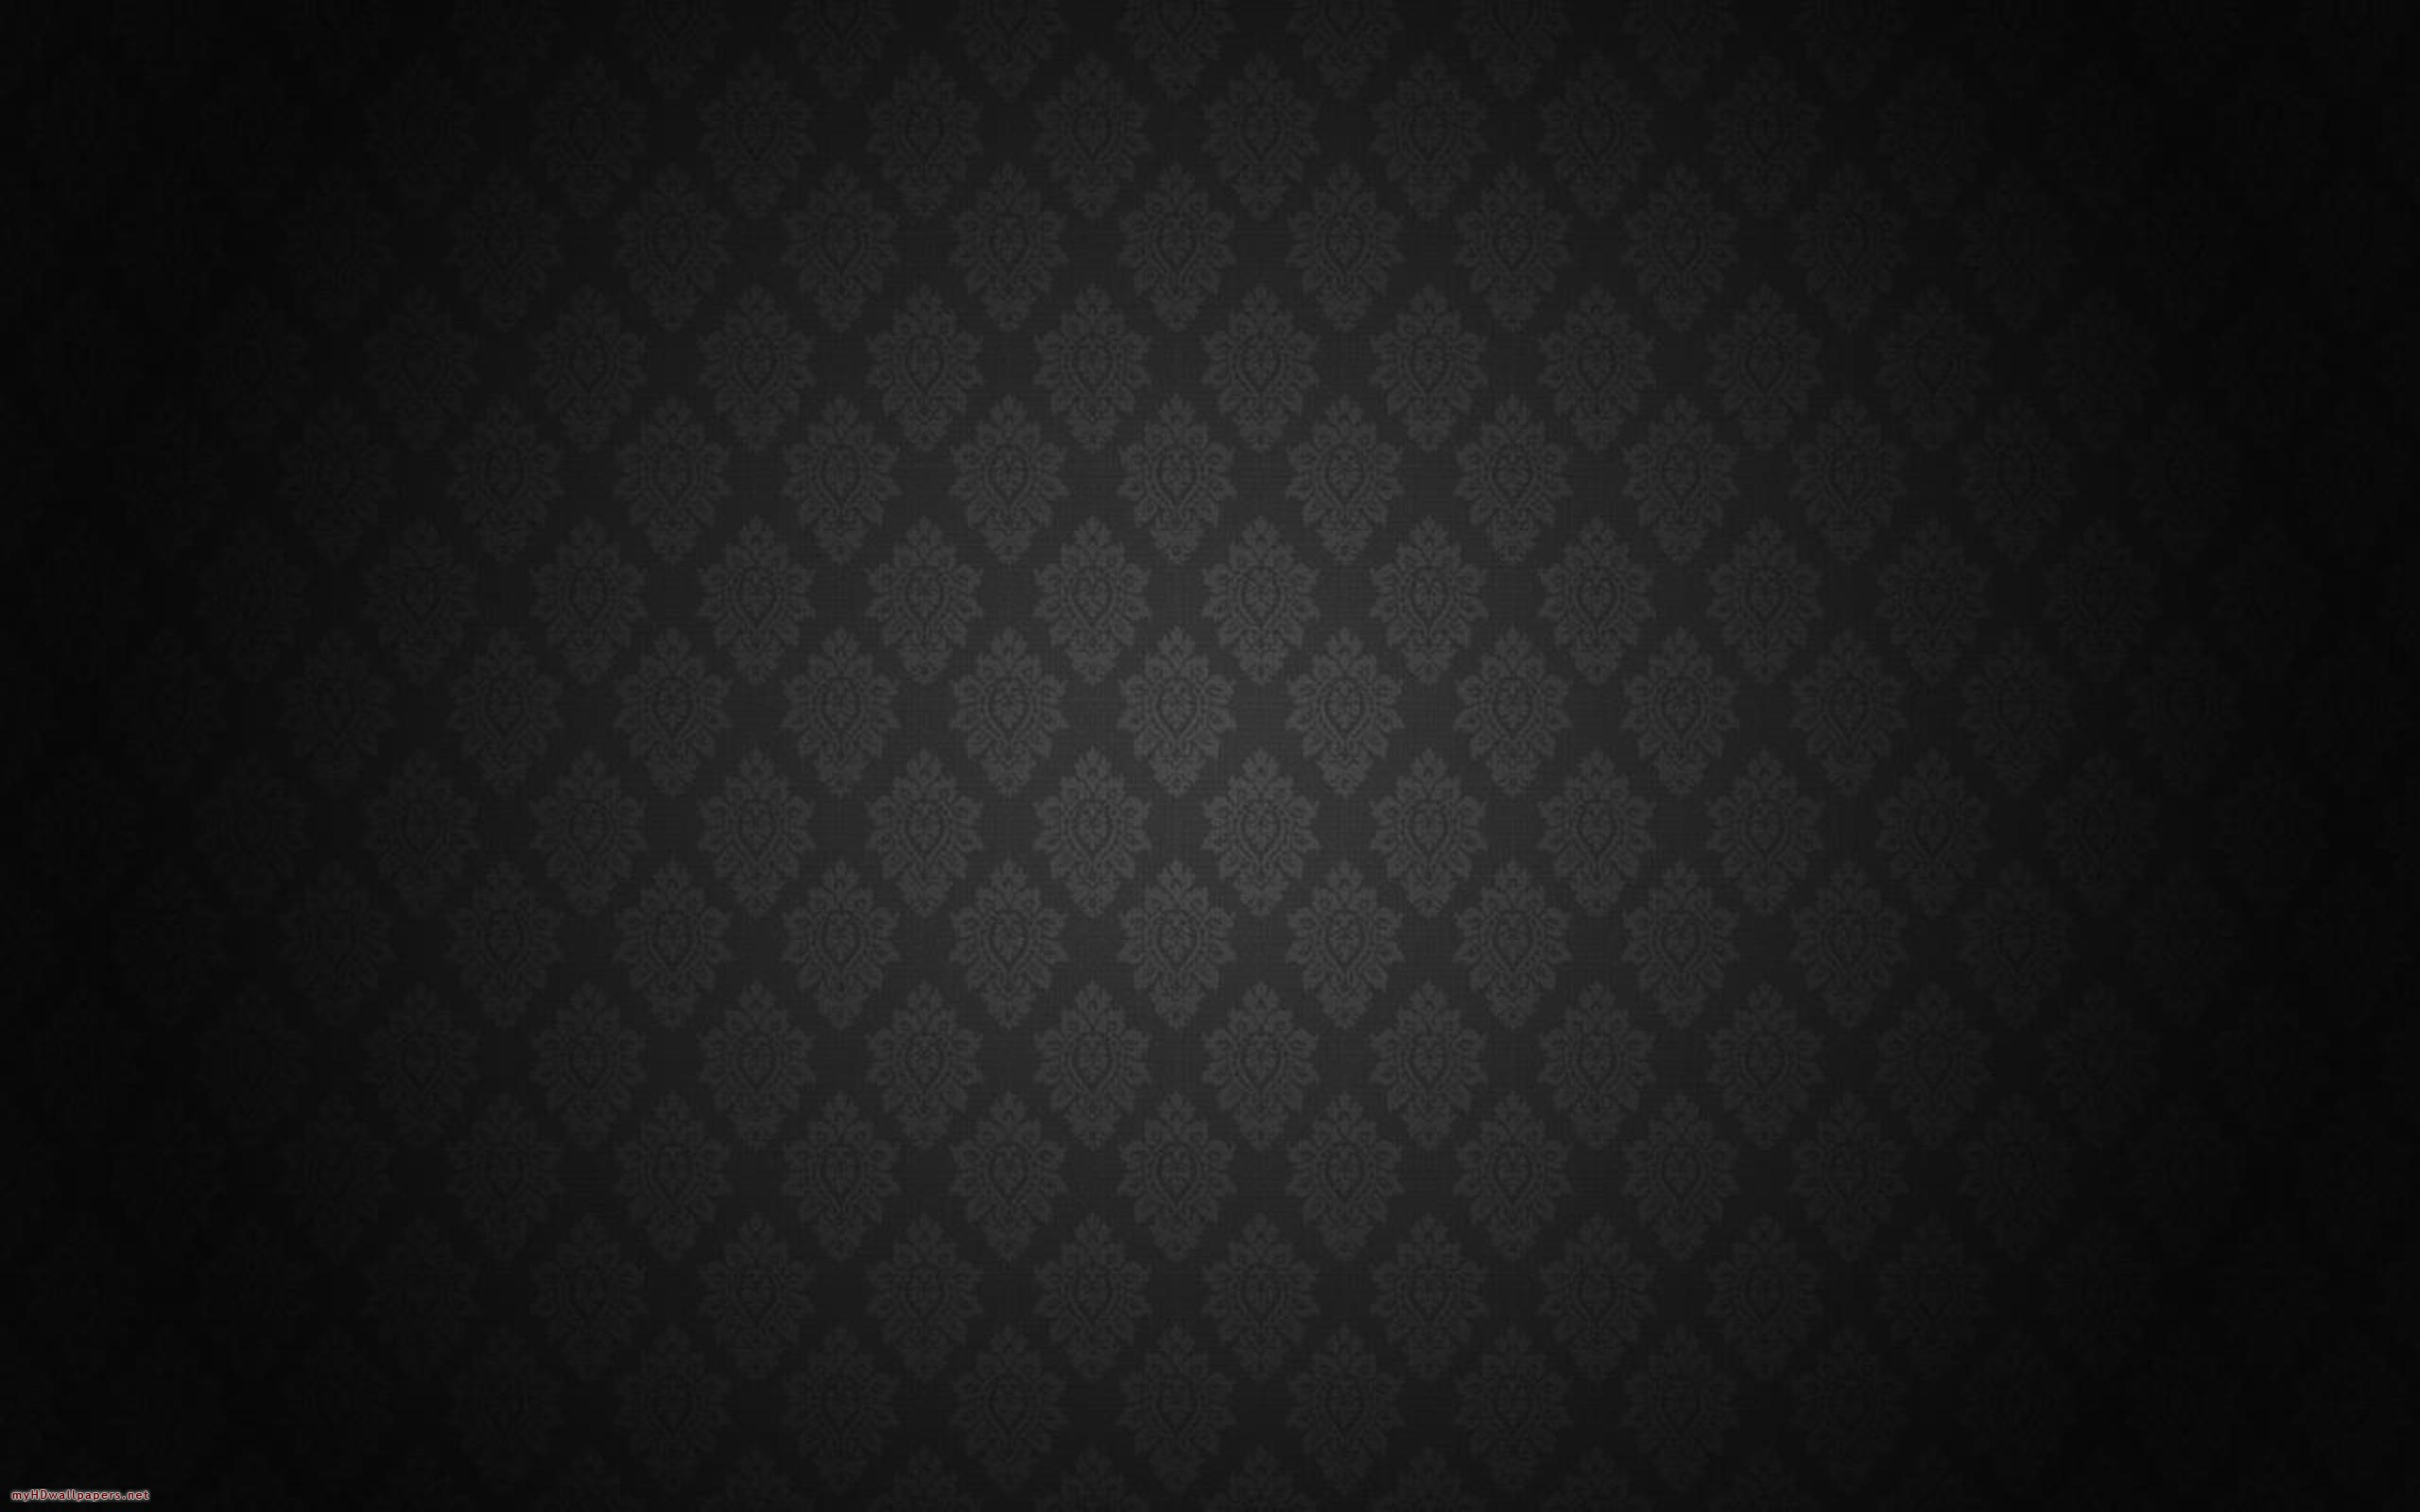 Download 600 Wallpaper Black Desktop Hd  Terbaik